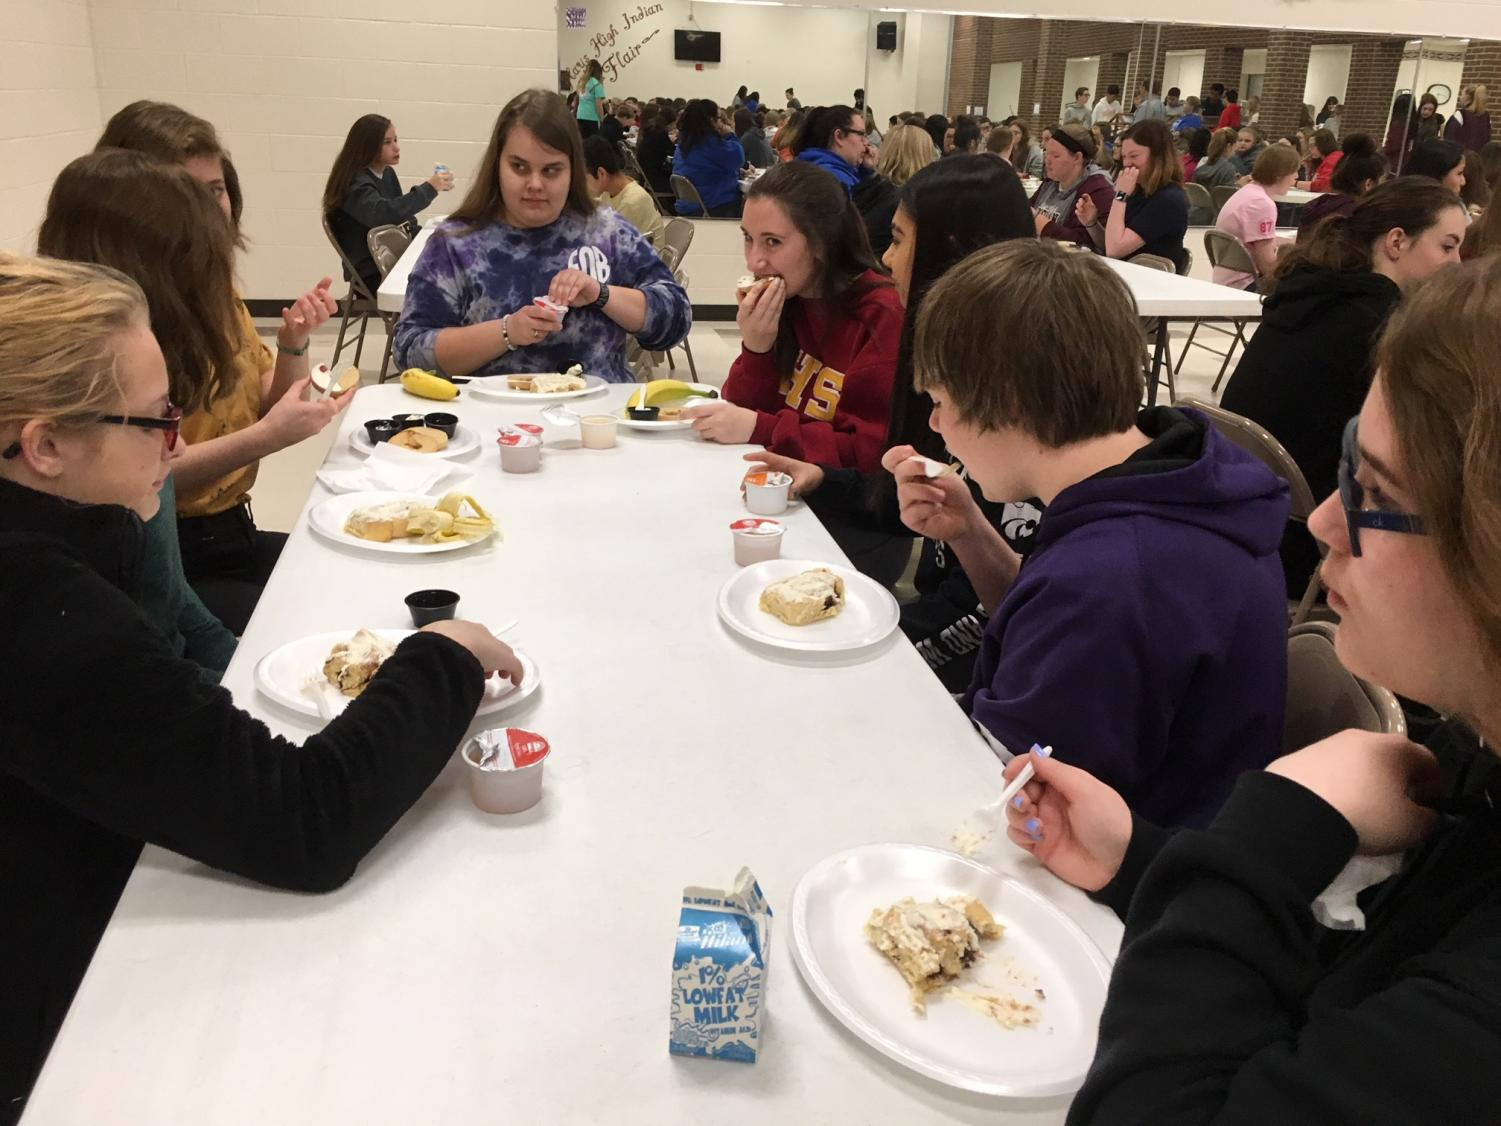 Students eat their cinnamon rolls at Breakfast of Champions.  Breakfast of Champions was held March 28 during first hour for students who earned a 3.3 GPA or above during the third quarter.